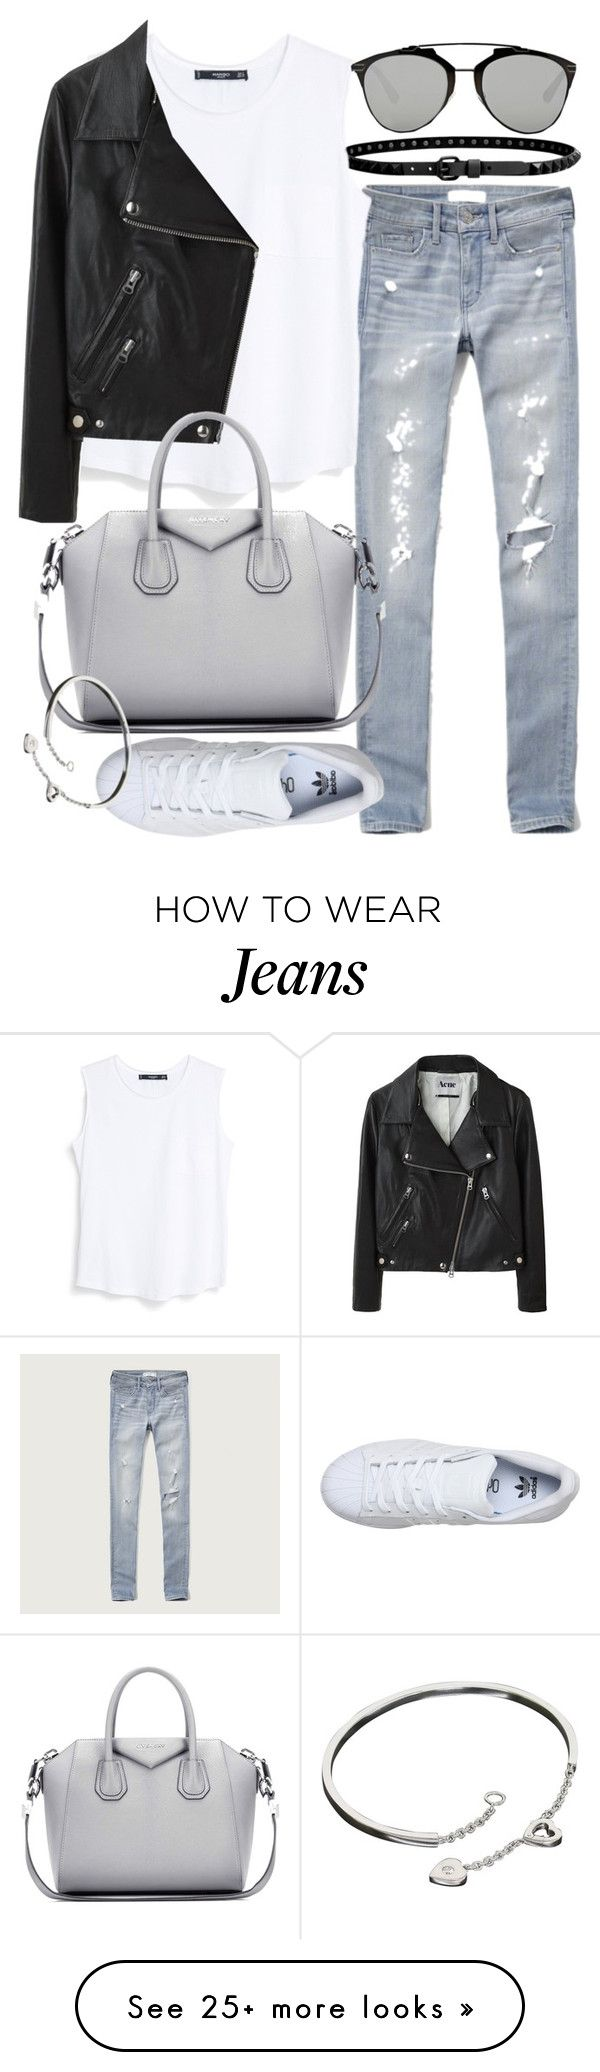 """""""Untitled #19532"""" by florencia95 on Polyvore featuring Abercrombie & Fitch, Linea Pelle, MANGO, Acne Studios, Givenchy, adidas, Cartier, Christian Dior, women's clothing and women"""